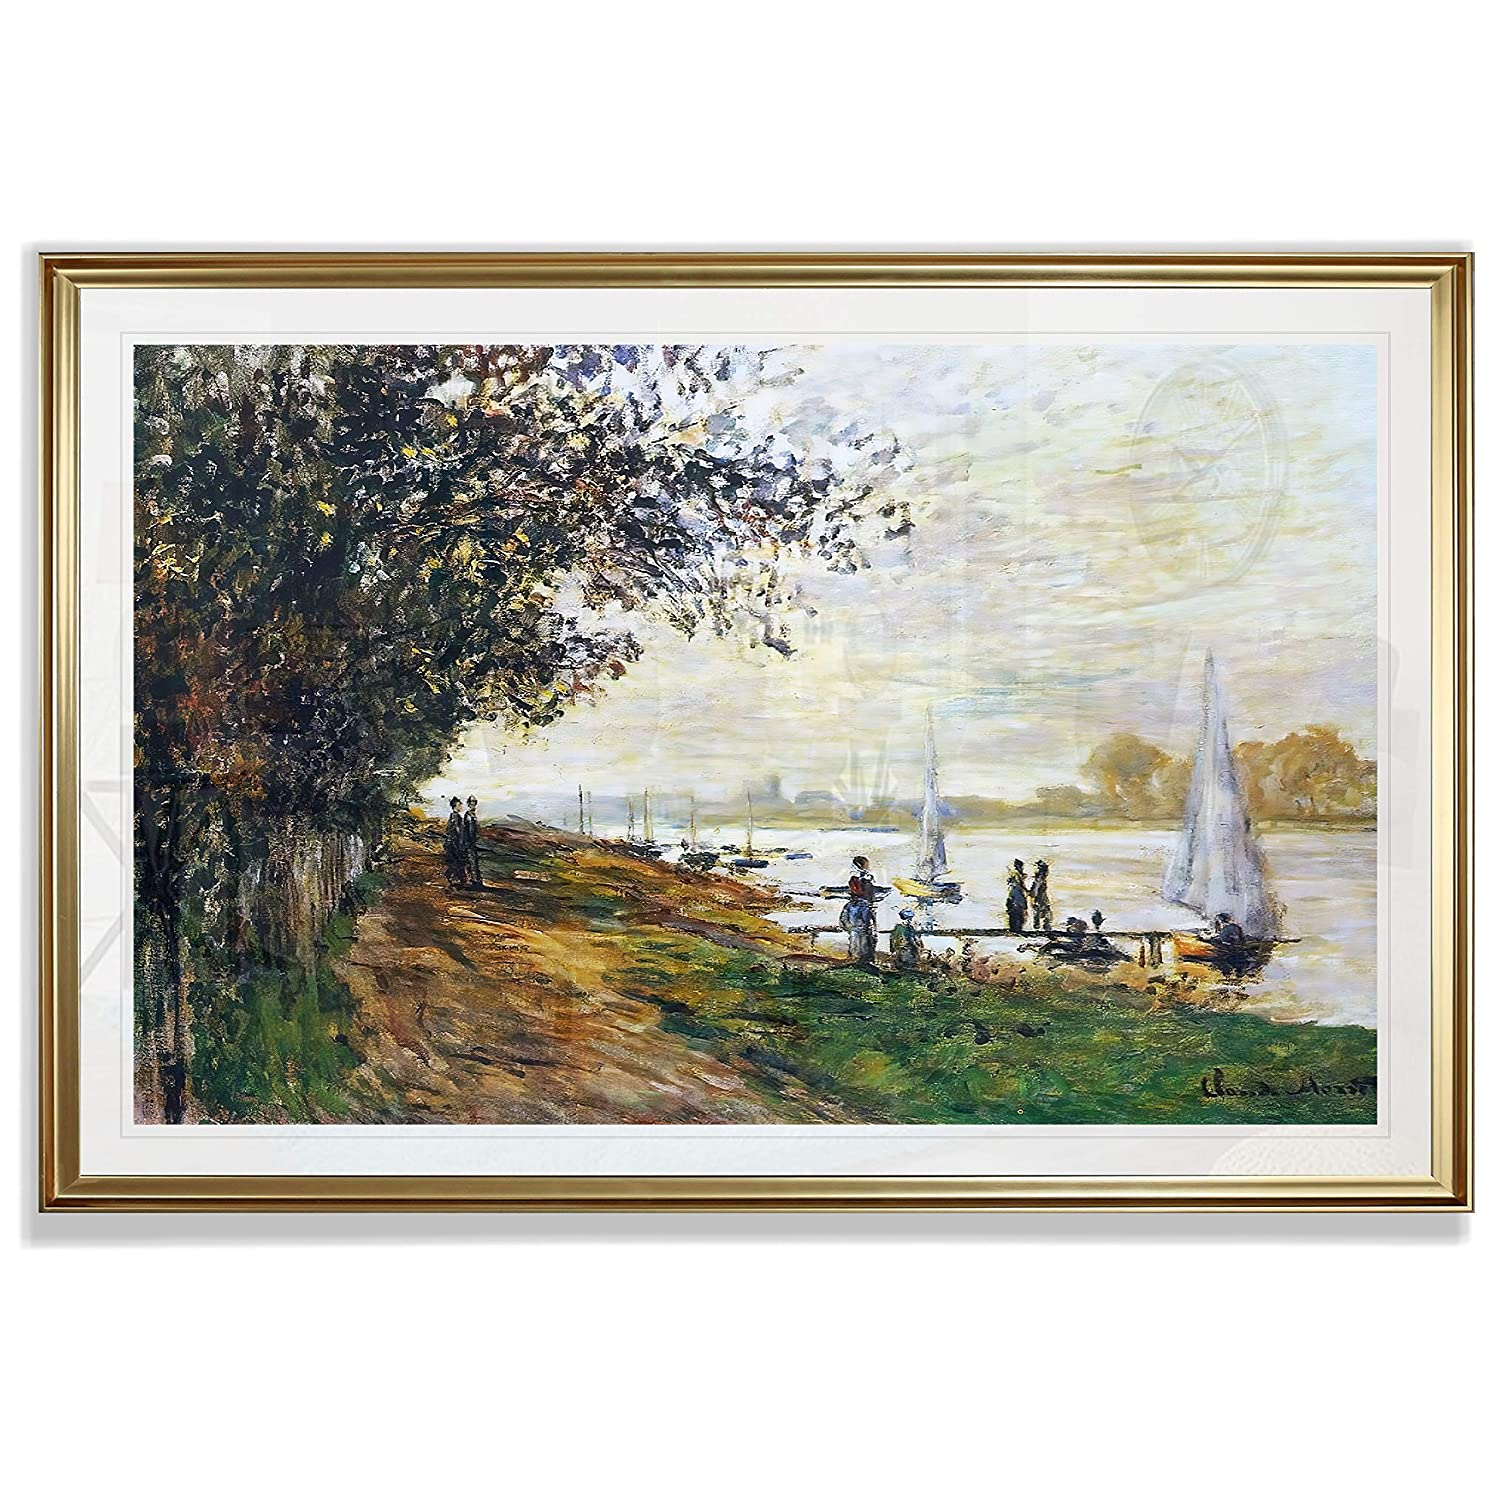 Monet Wall Art Collection The The Riverbank at Le Petit-Gennevilliers, Sunset, 1875 Fine Giclee Prints Wall Art in Premium Quality Framed Ready to Hang 16X22, Gold